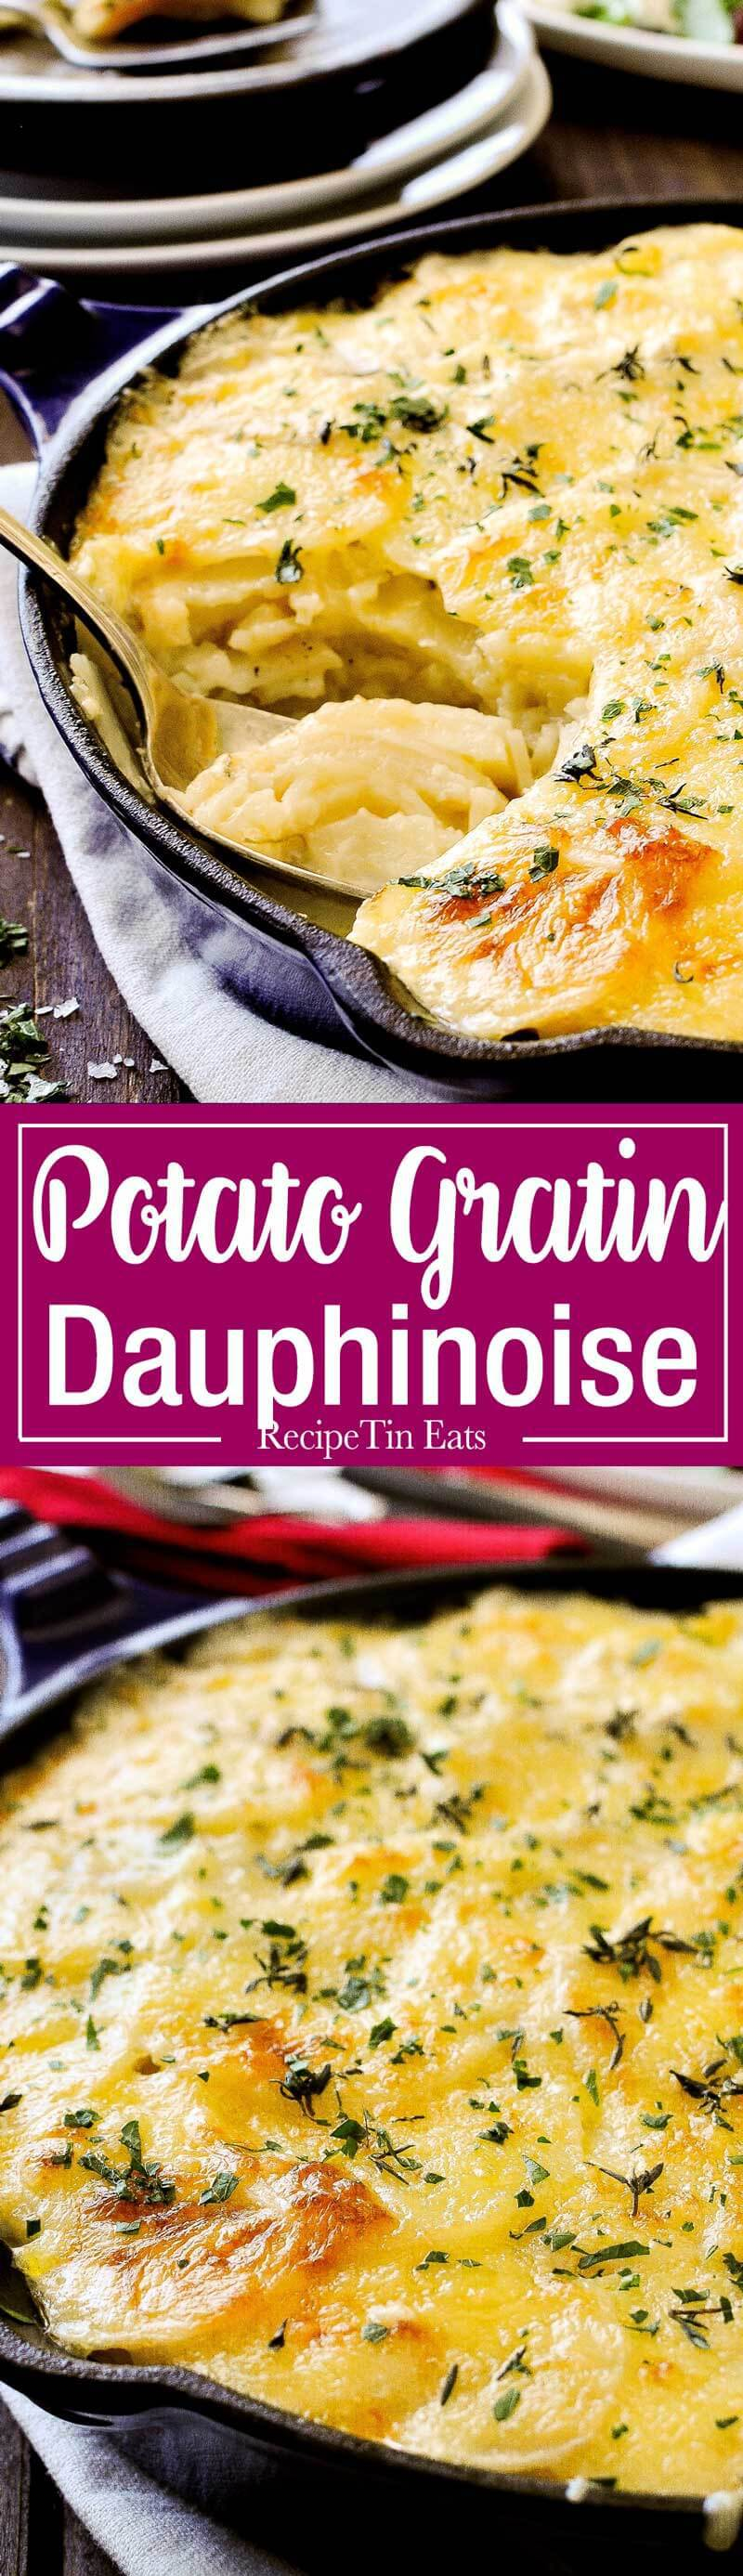 Julia Child's Potato Dauphinoise - The ultimate potato bake! This is the legendary Julia Child's potato gratin - layers of potato slices with cream, cheese and a hint of garlic! www.recipetineats.com